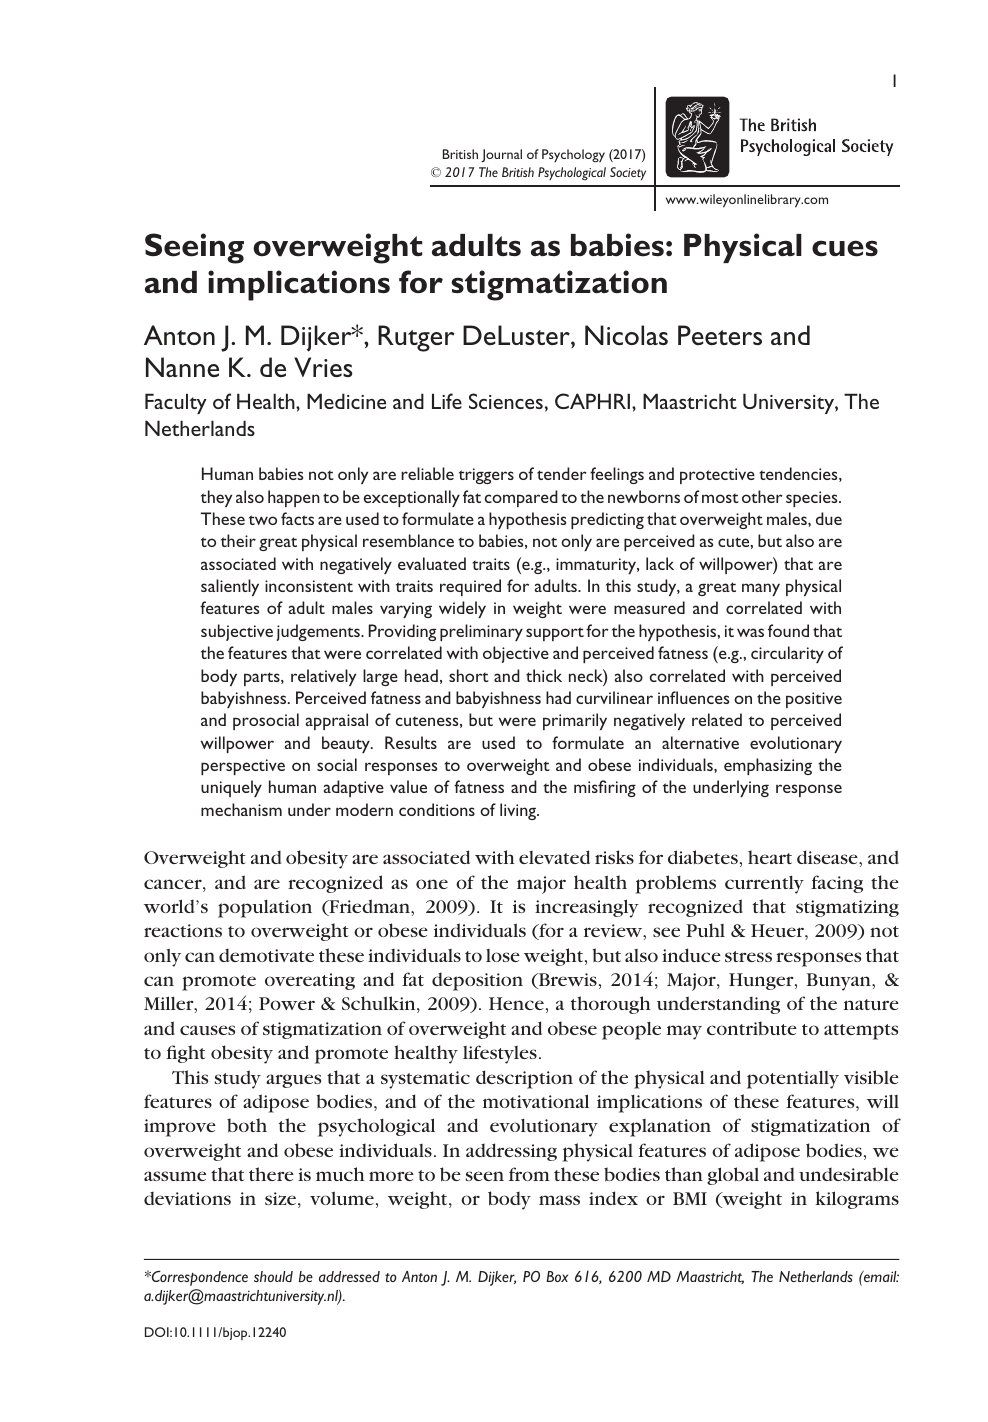 Seeing overweight adults as babies: Physical cues and